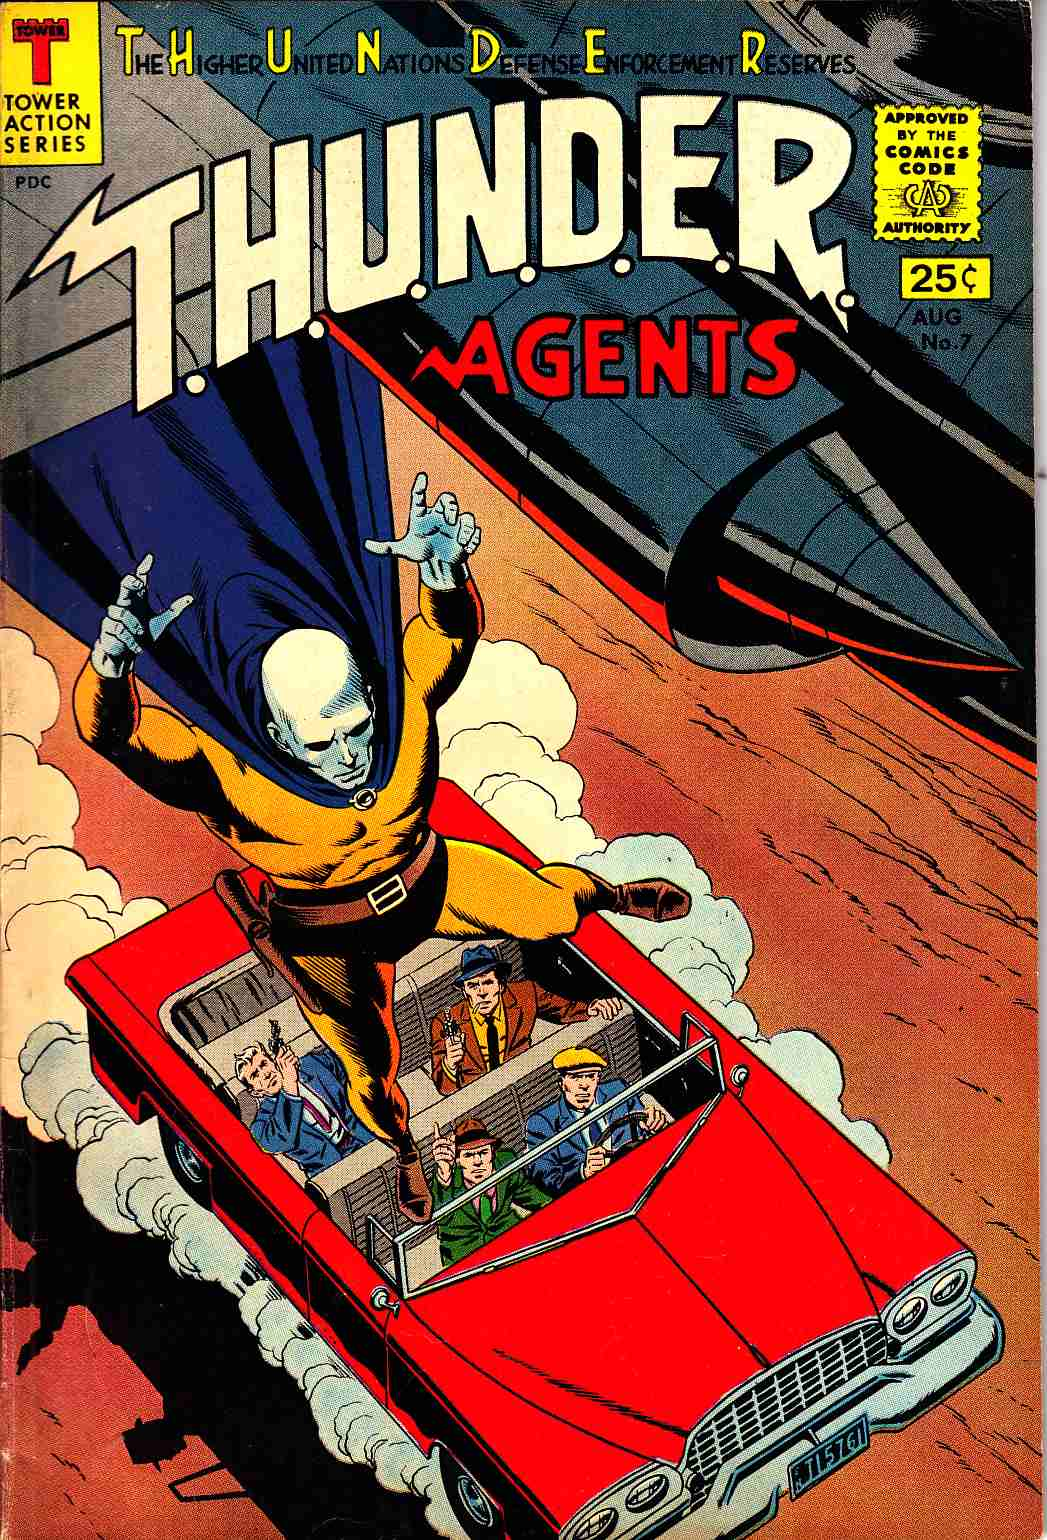 Thunder Agents #7 Fine (6.0) [Tower Comic] LARGE